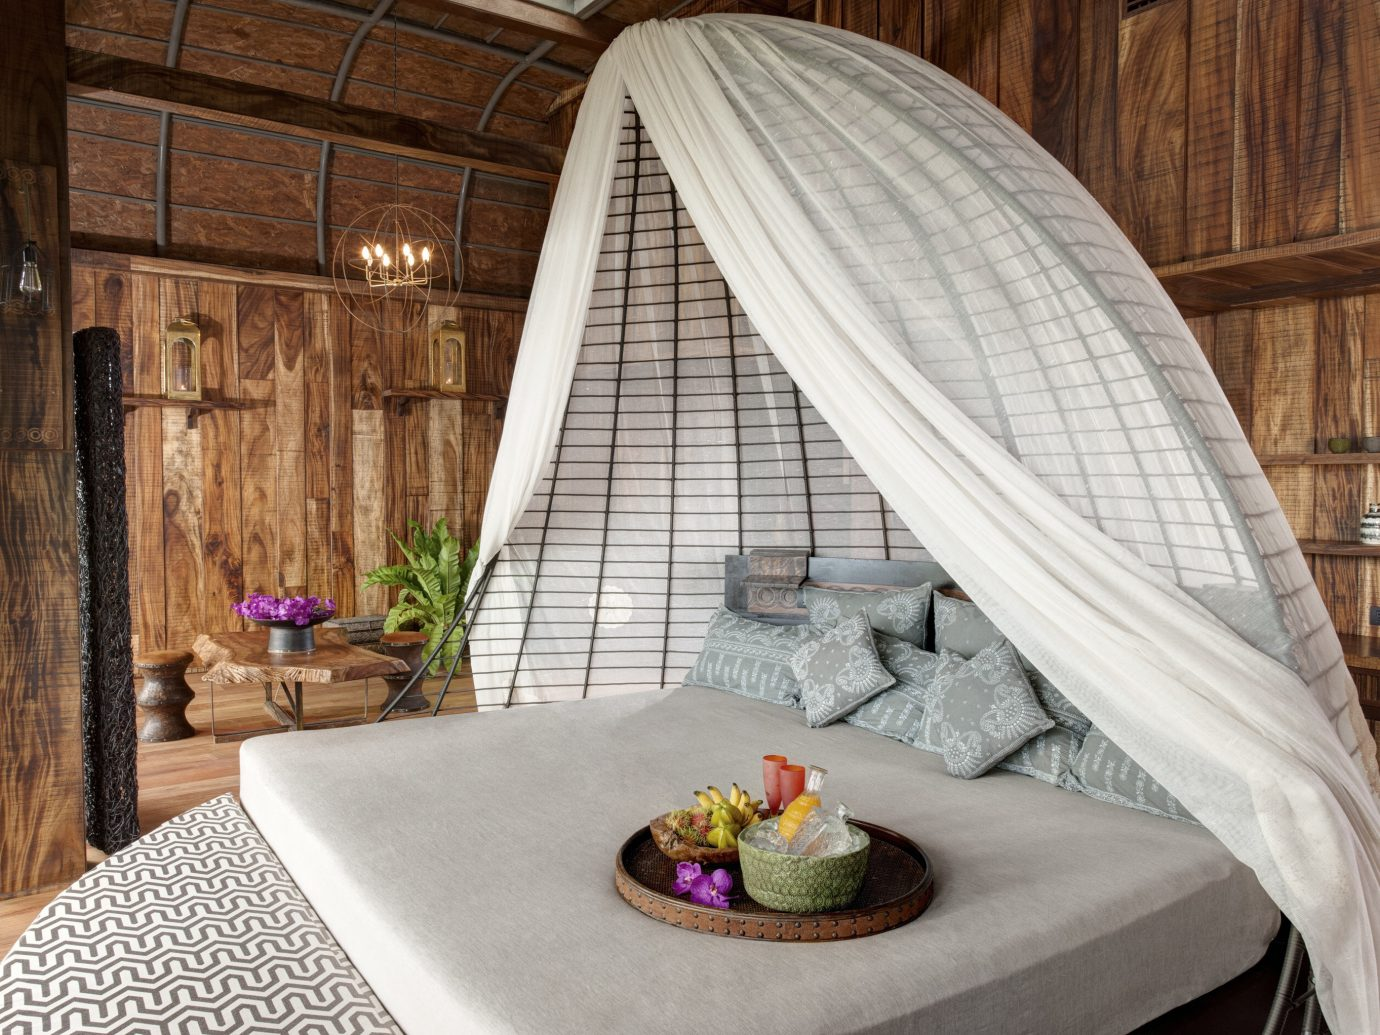 Bedroom at Keemala, Phuket, Thailand